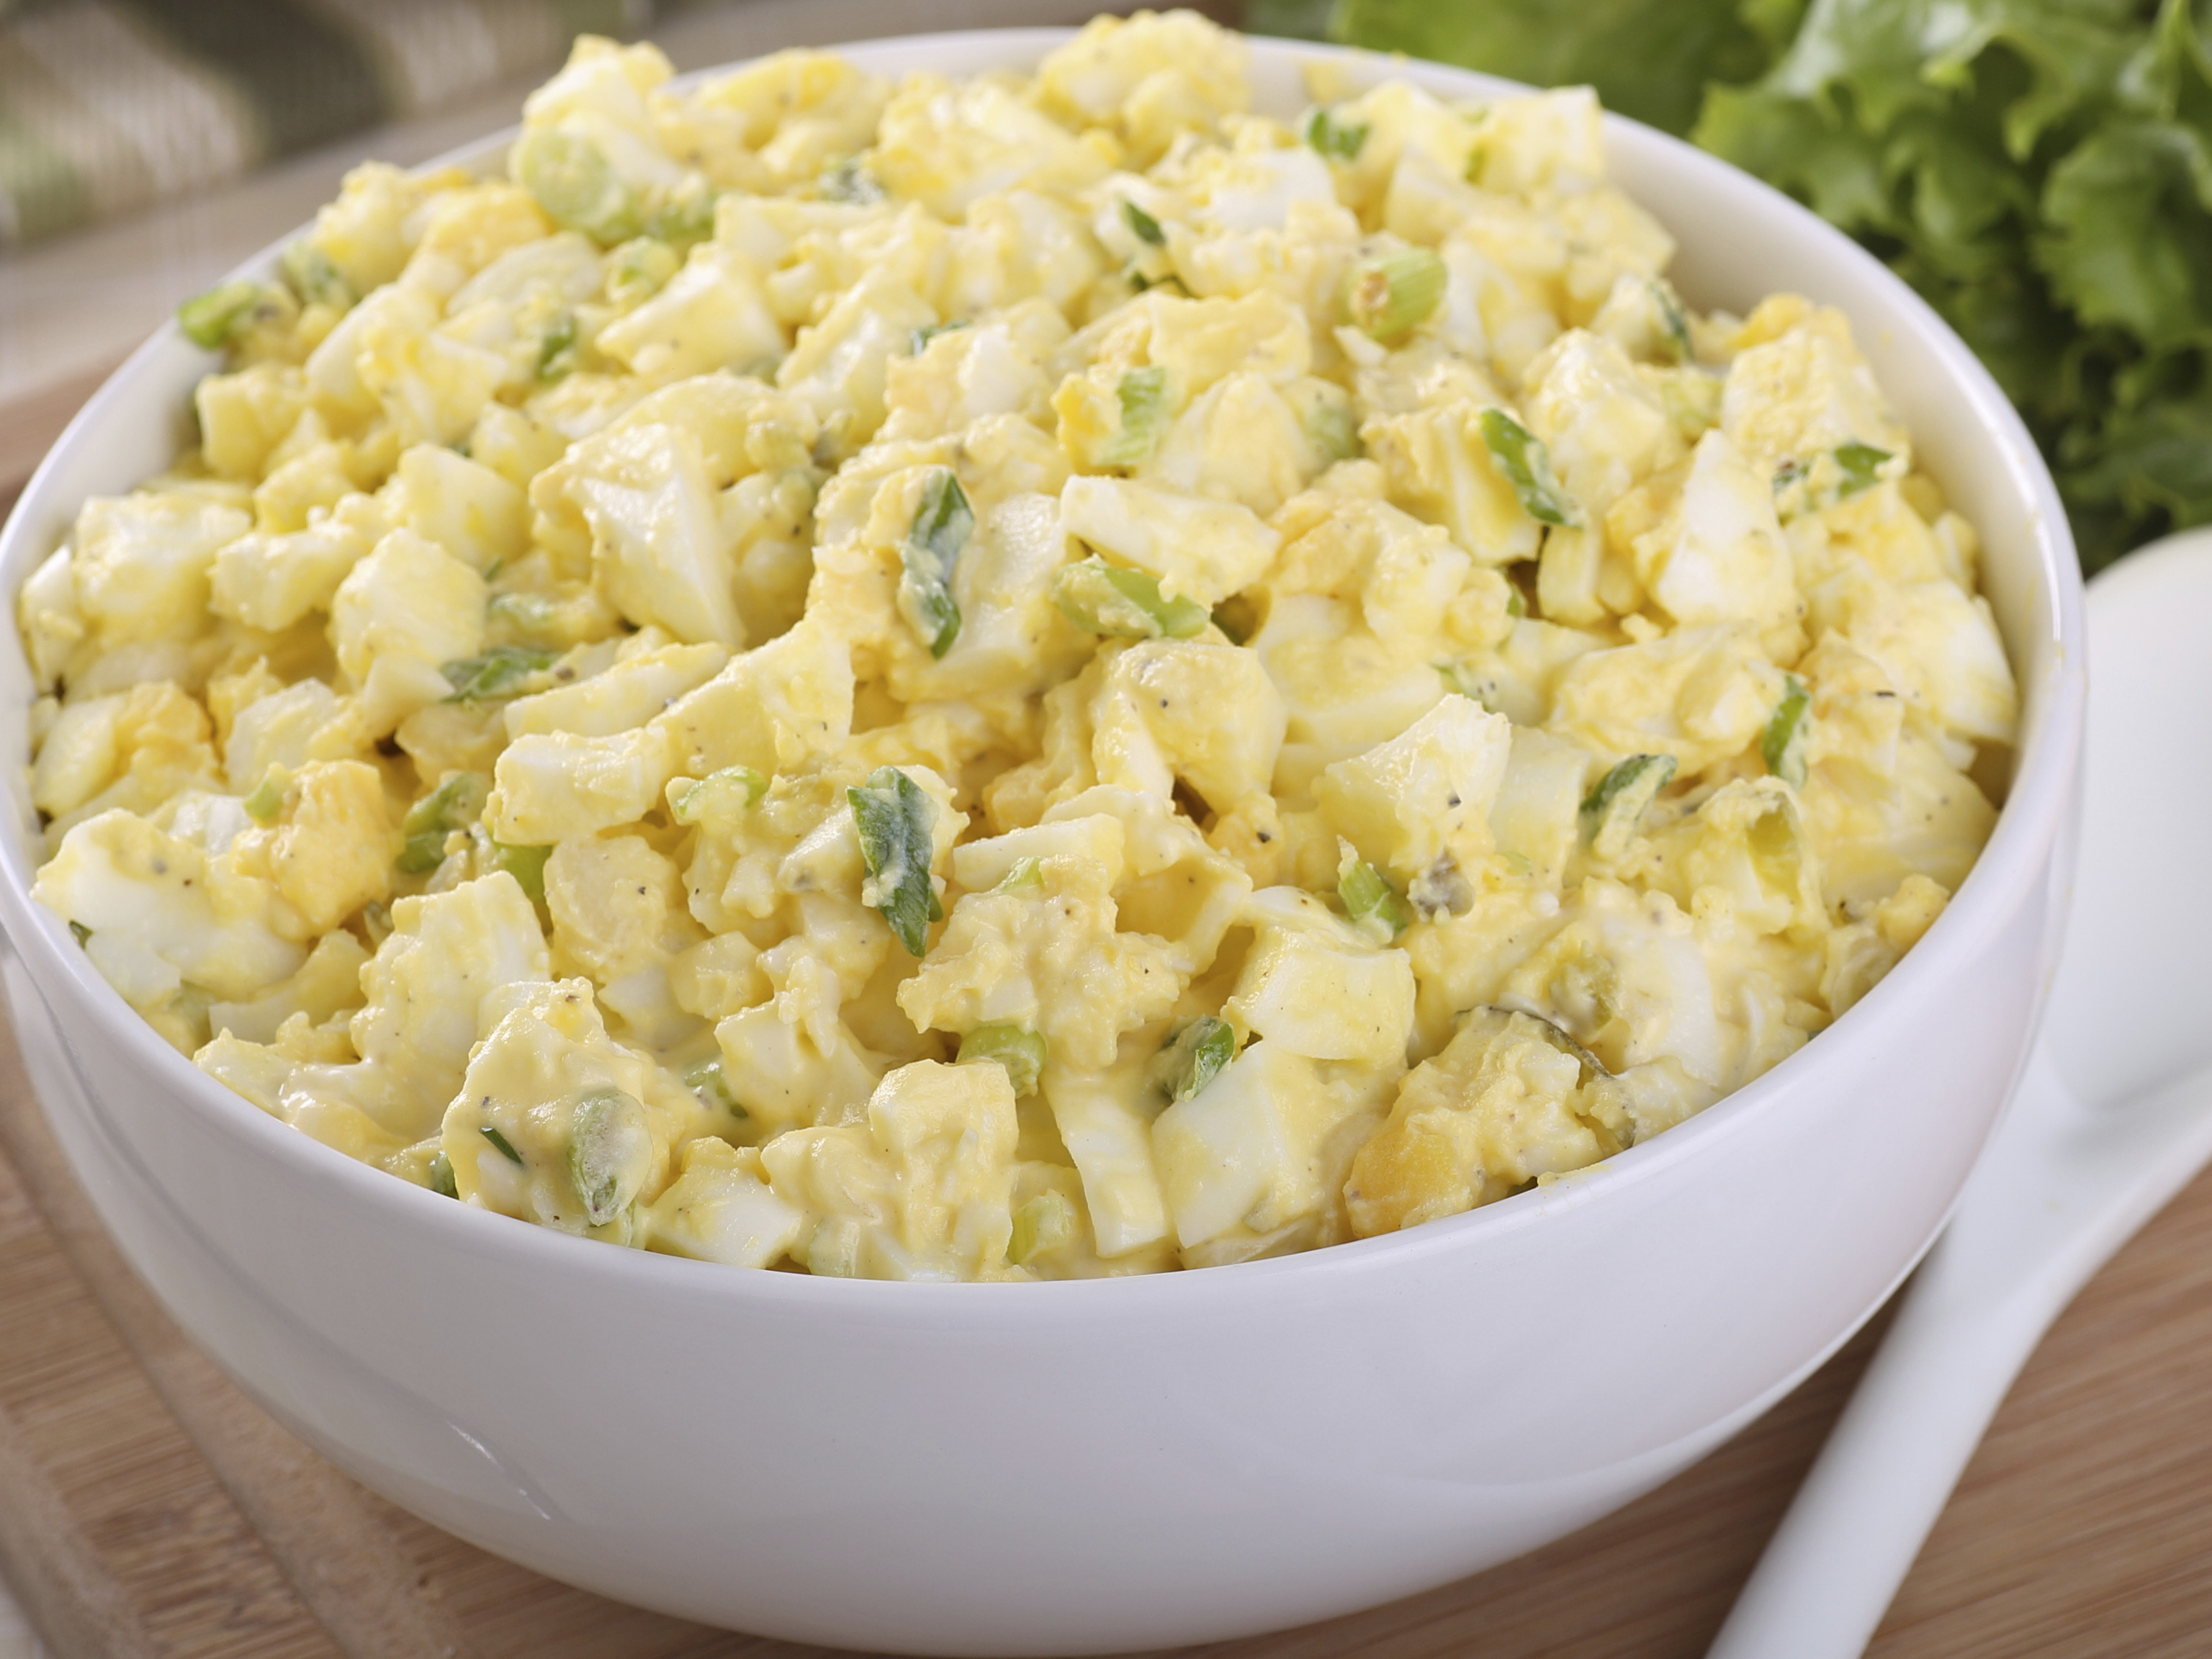 Egg Salad With Avocado And Chickpeas